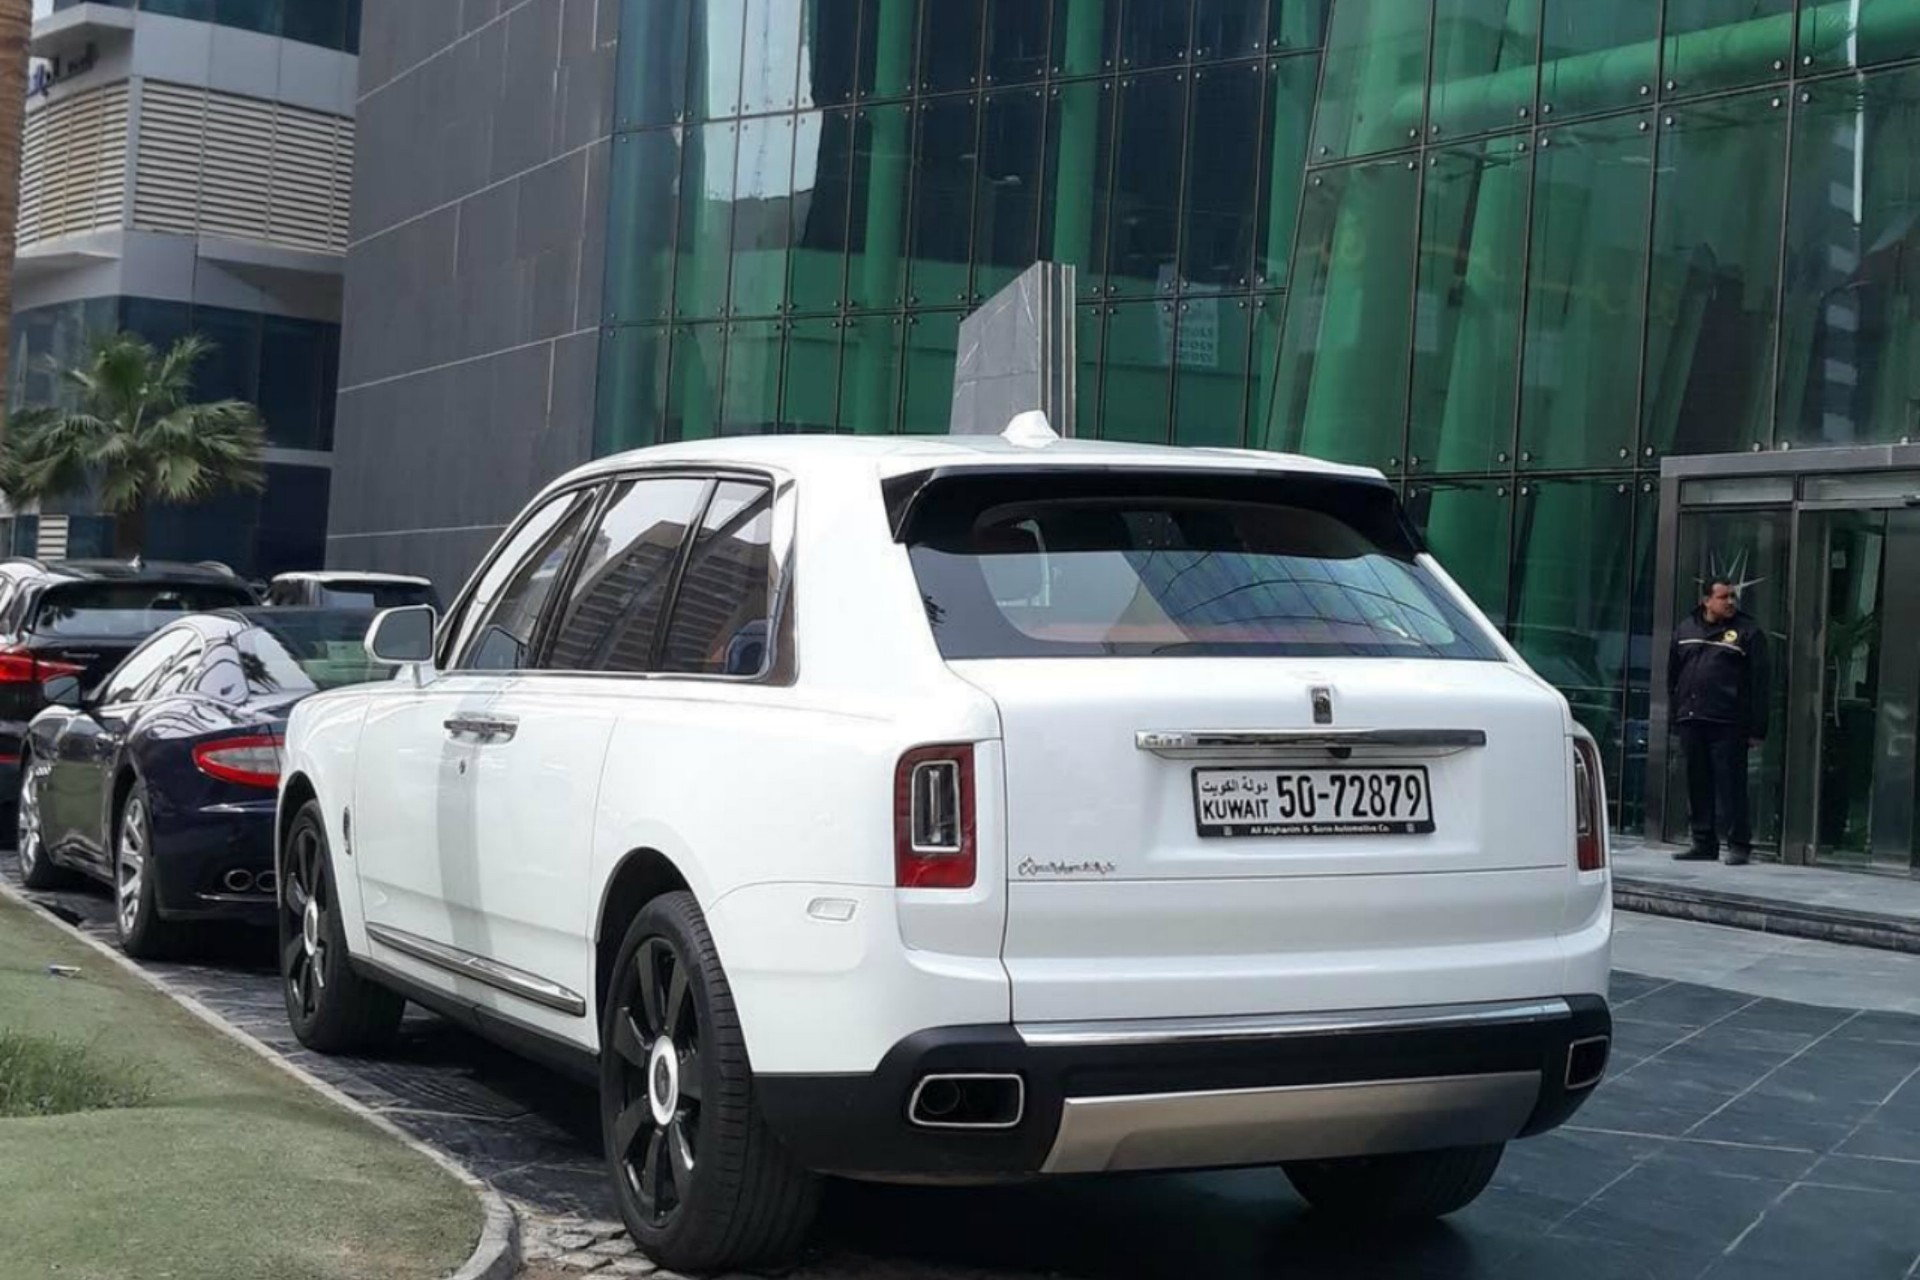 Range Rover Used For Sale >> White Rolls Royce Cullinan In Kuwait - 6SpeedOnline ...